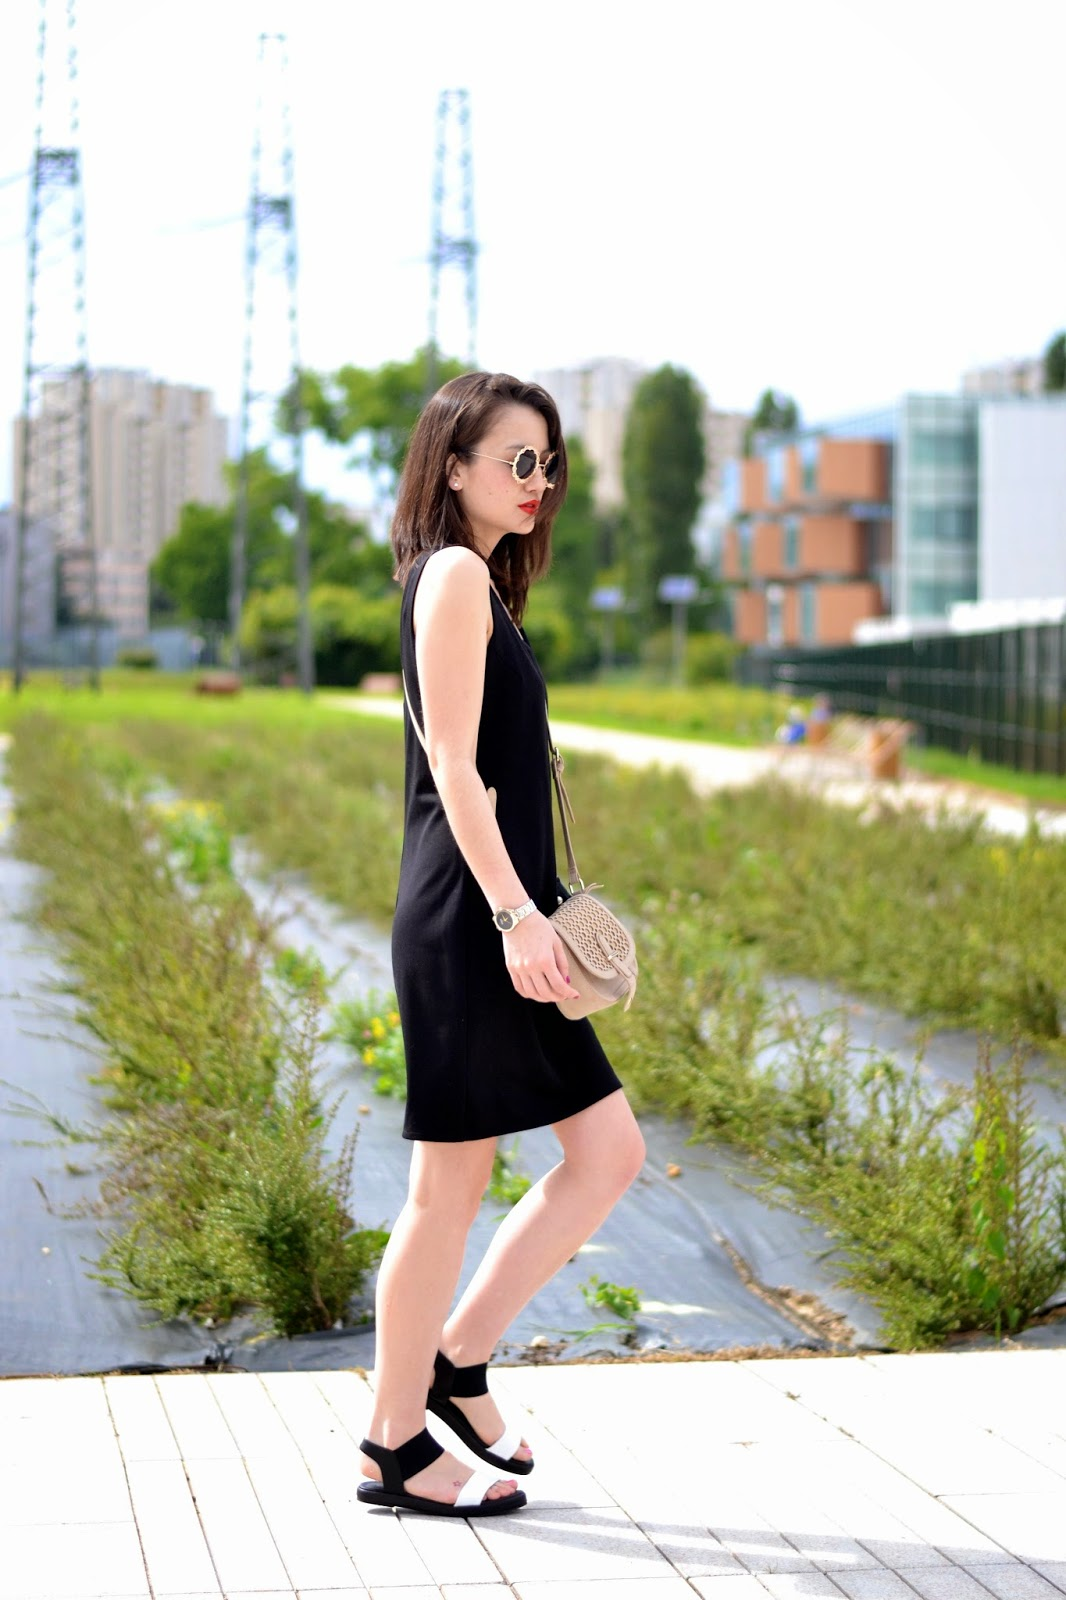 How to wear black dress